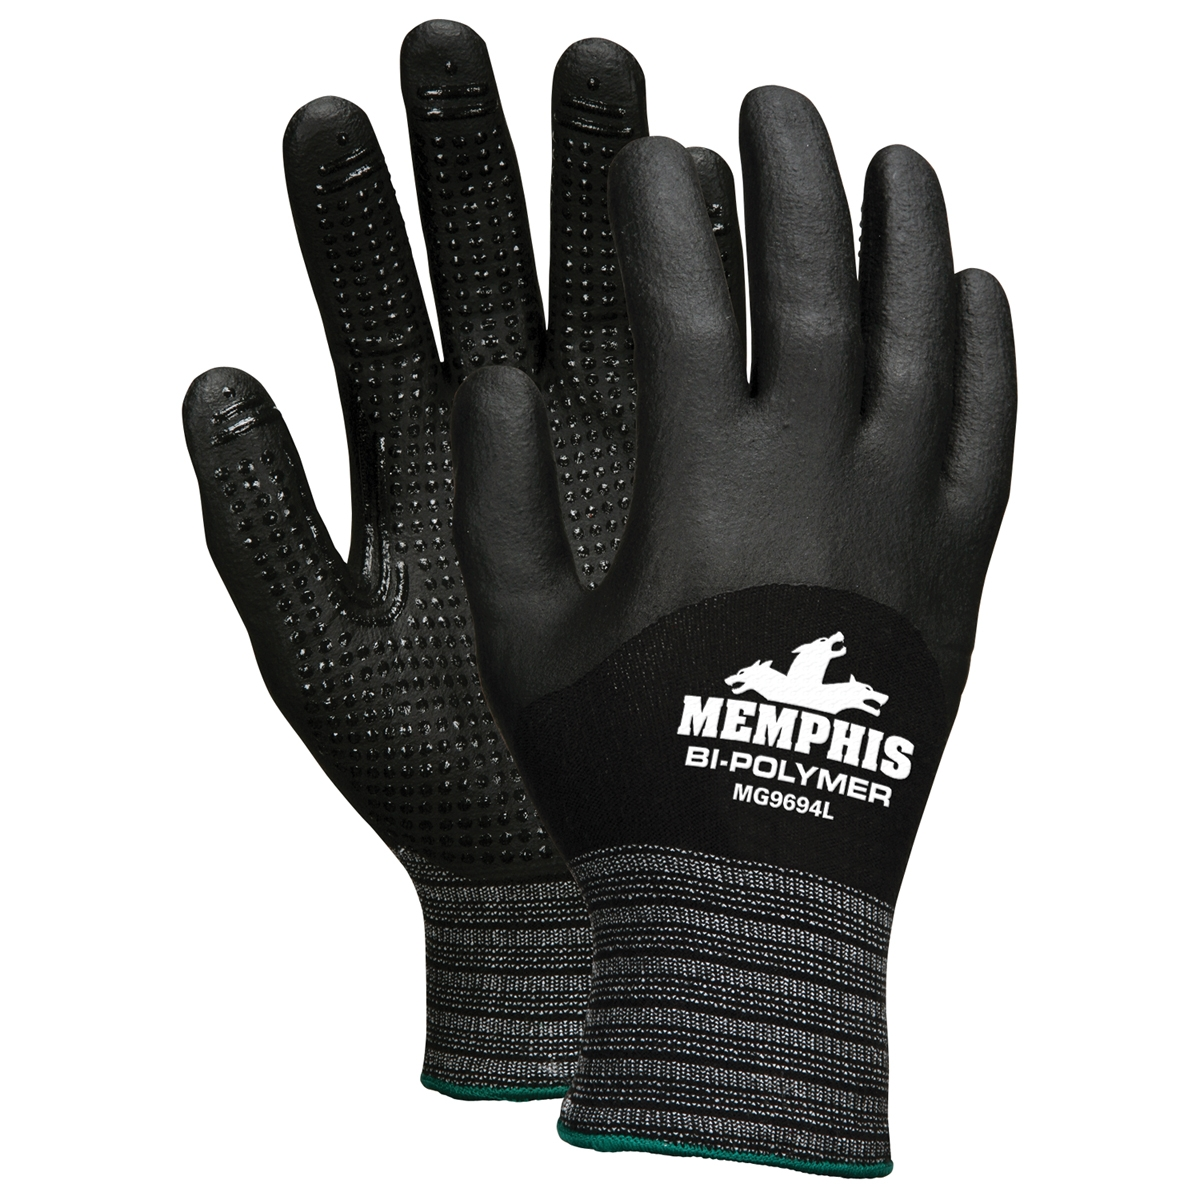 how to clean spandex gloves